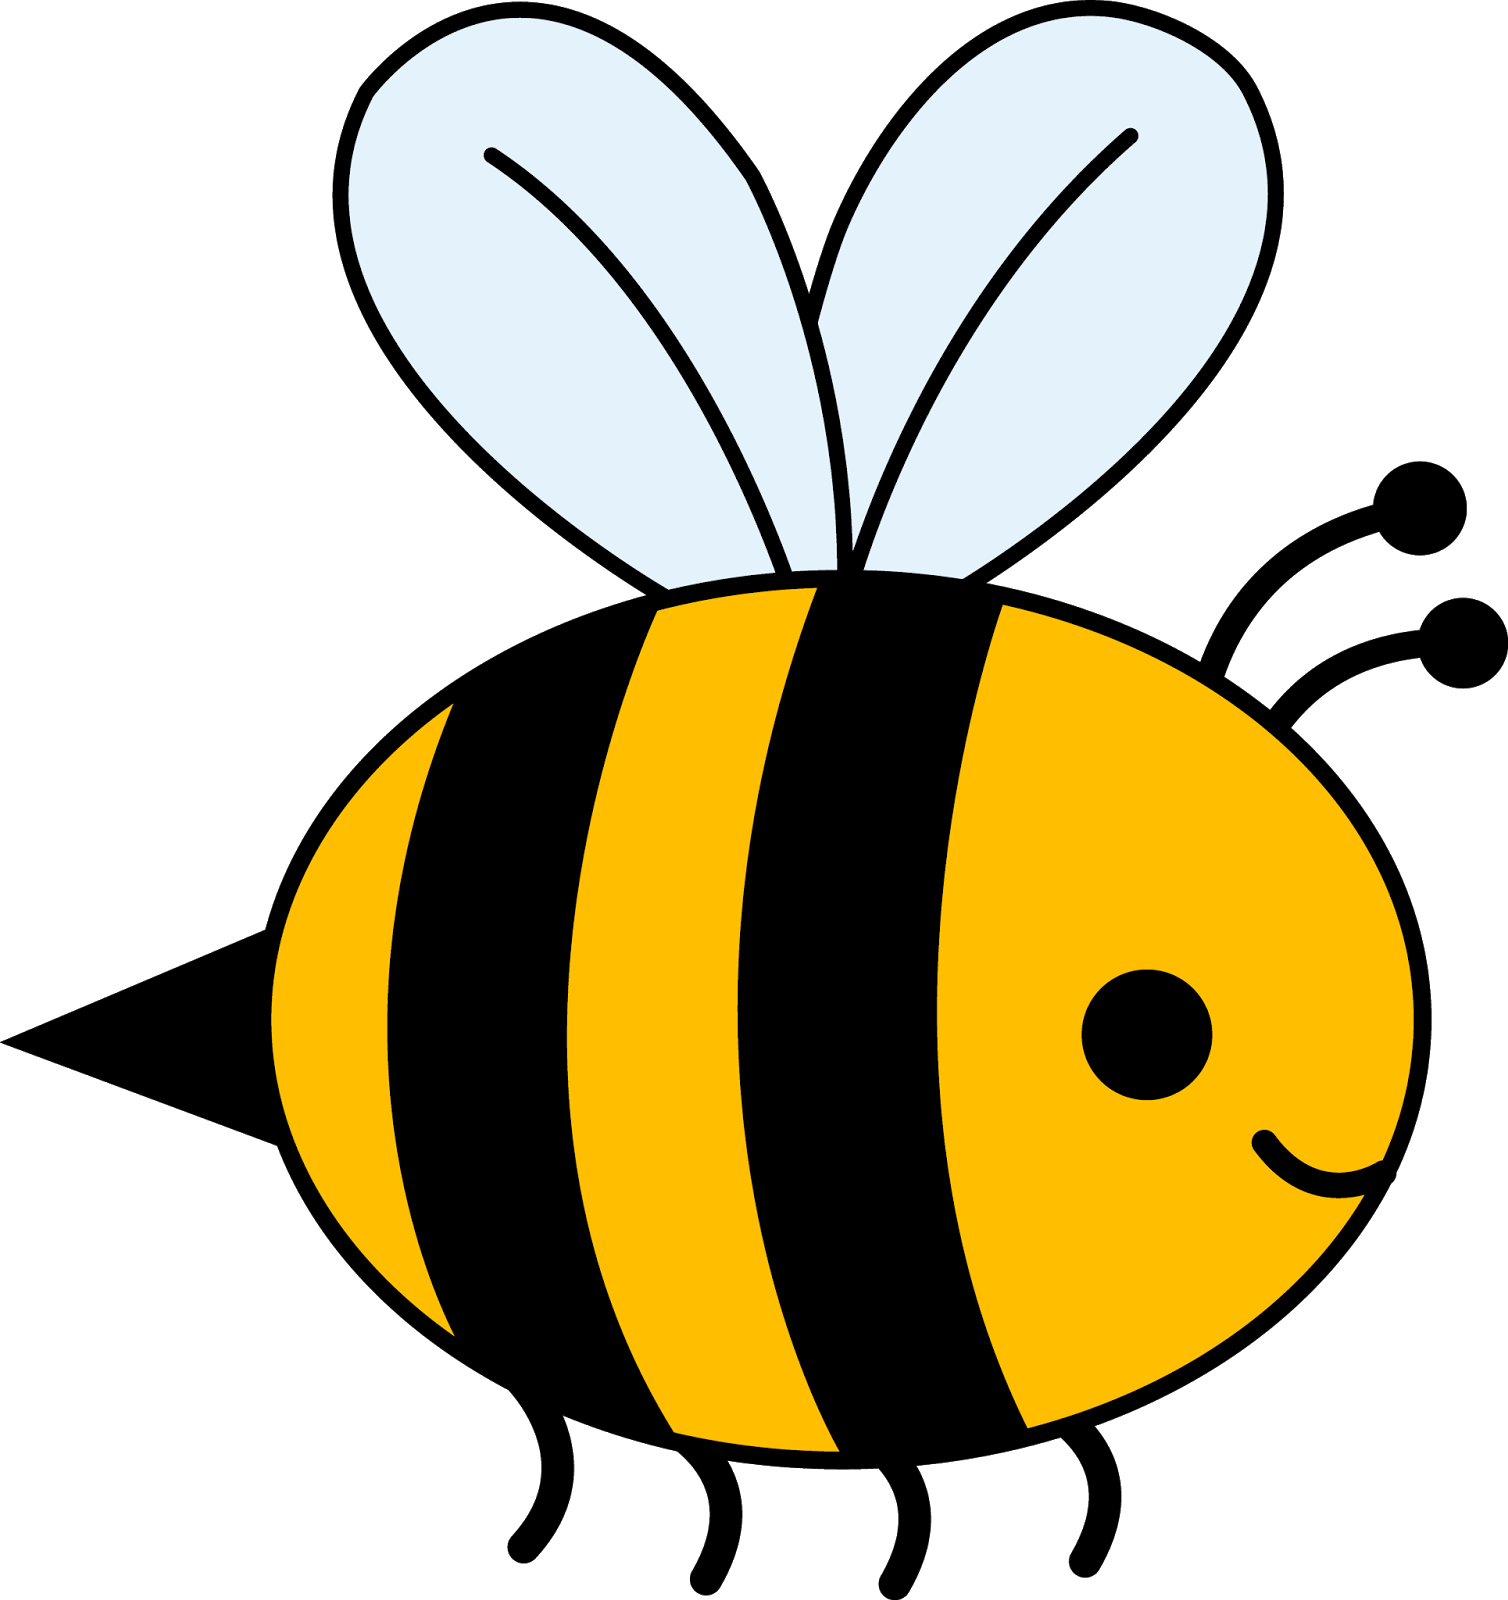 Bumblebee clipart. Bee black and white